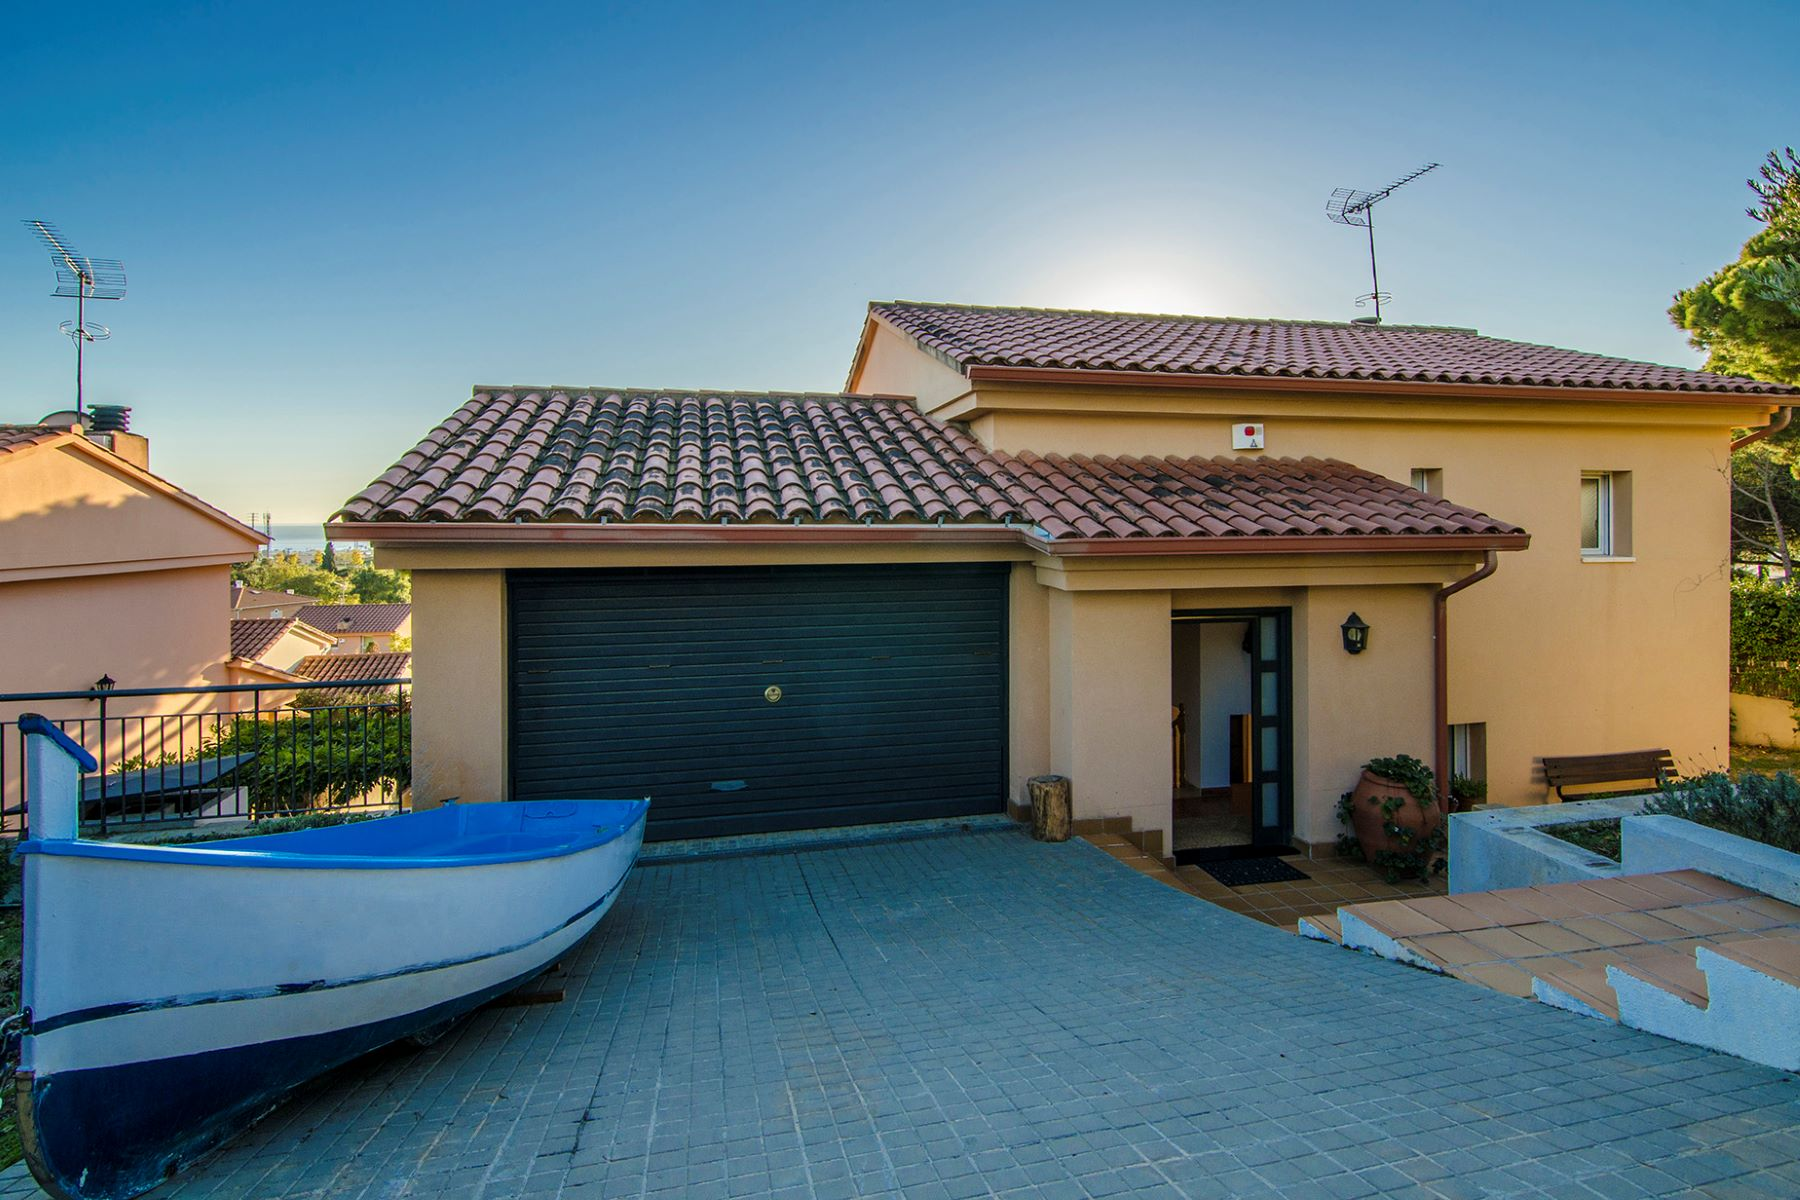 Single Family Home for Sale at Practical and Cozy Single-Family House in Cabrils Cabrils, Barcelona, 08348 Spain